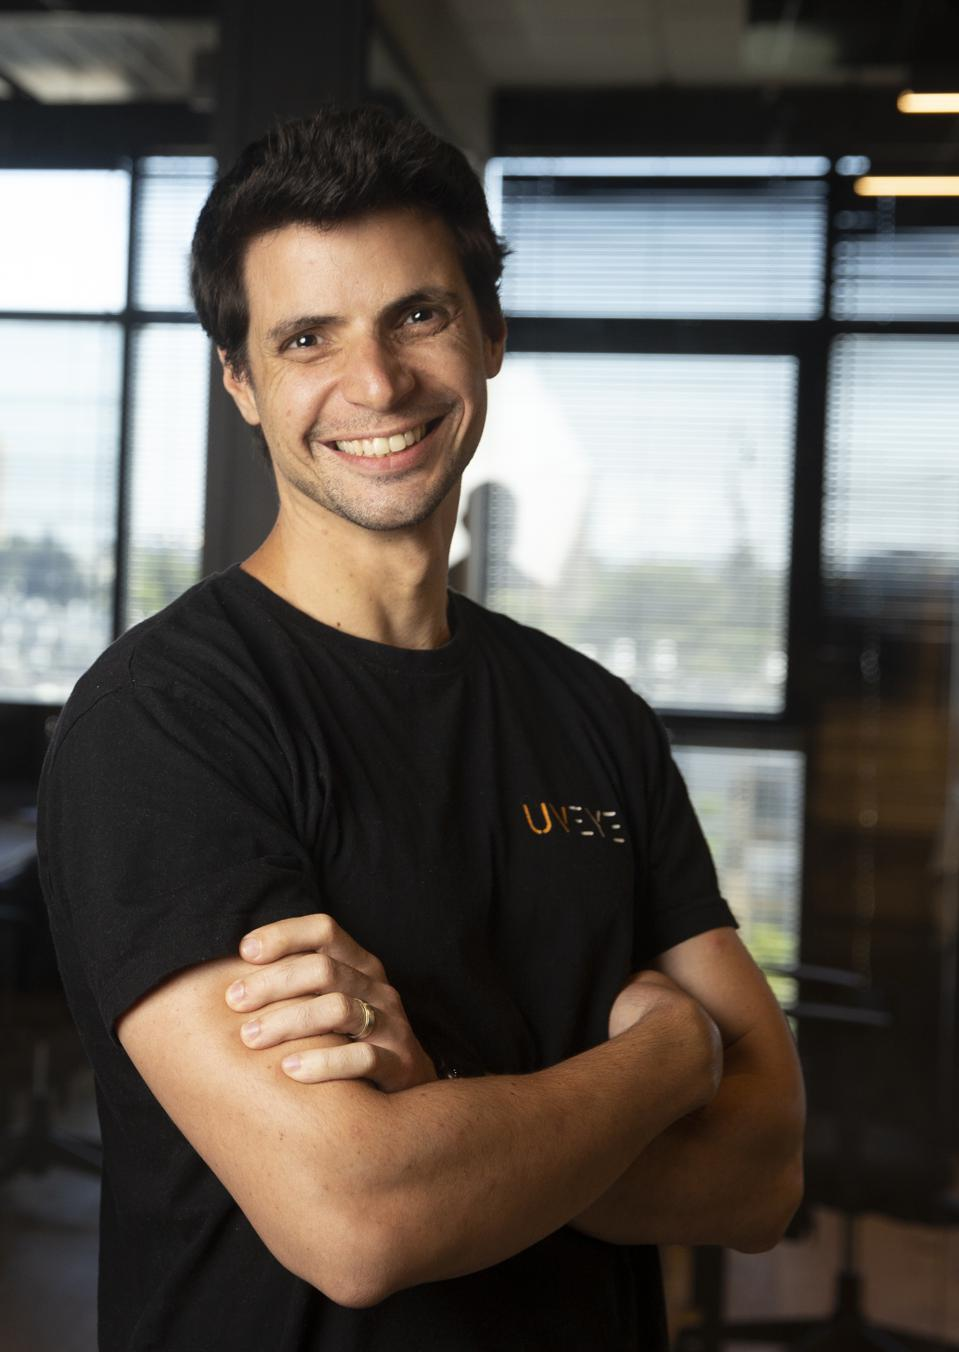 UVeye's is an Israeli startup that developed a drive-through vehicle inspection system.